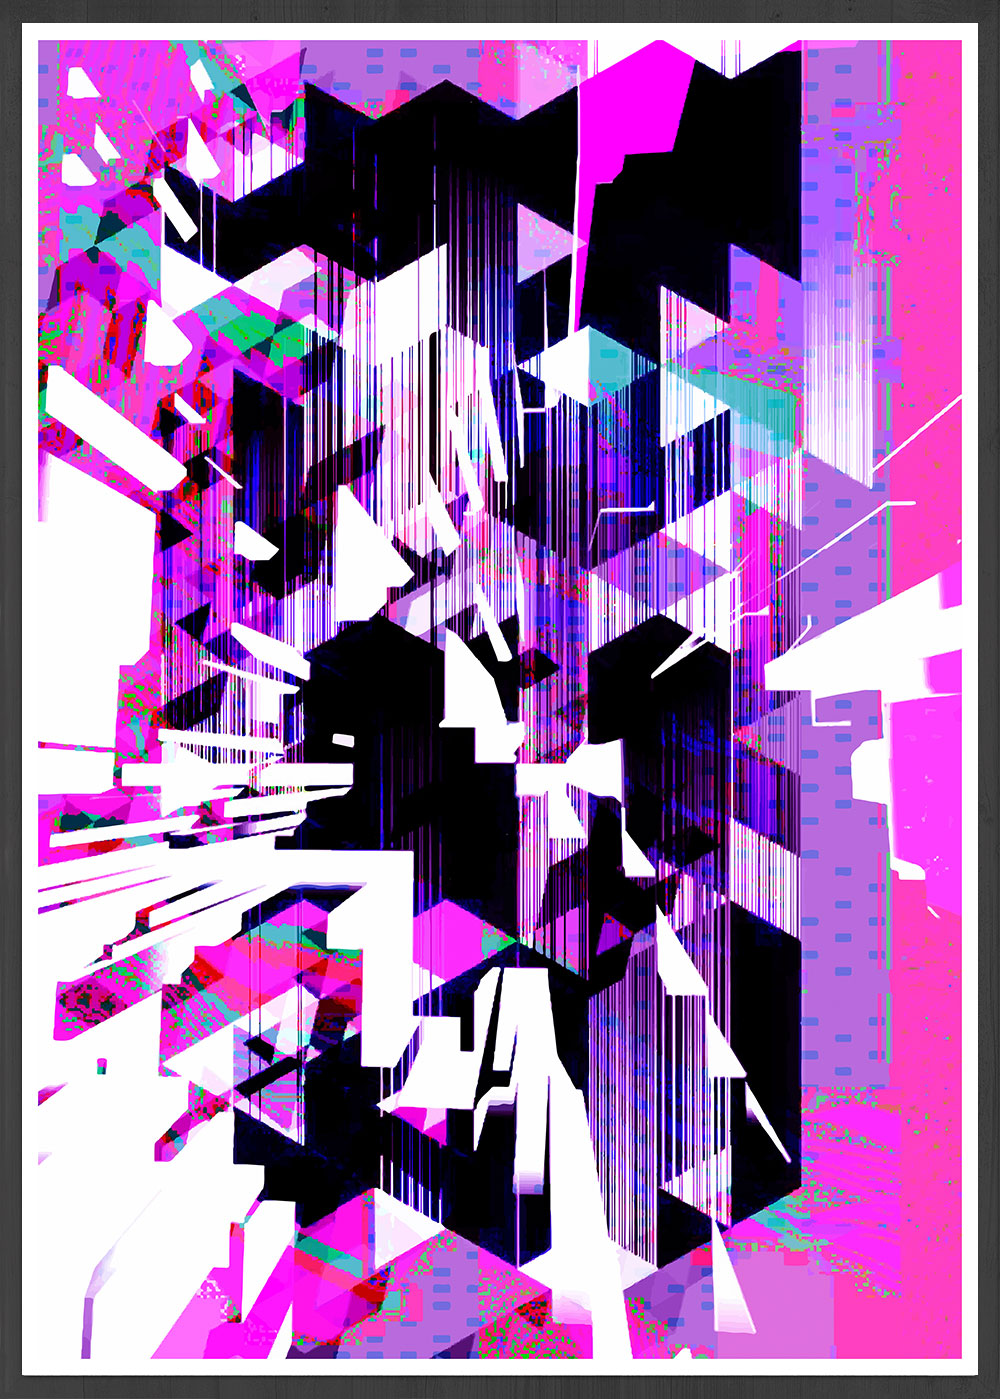 Cyber Punk Glitch Art in a frame